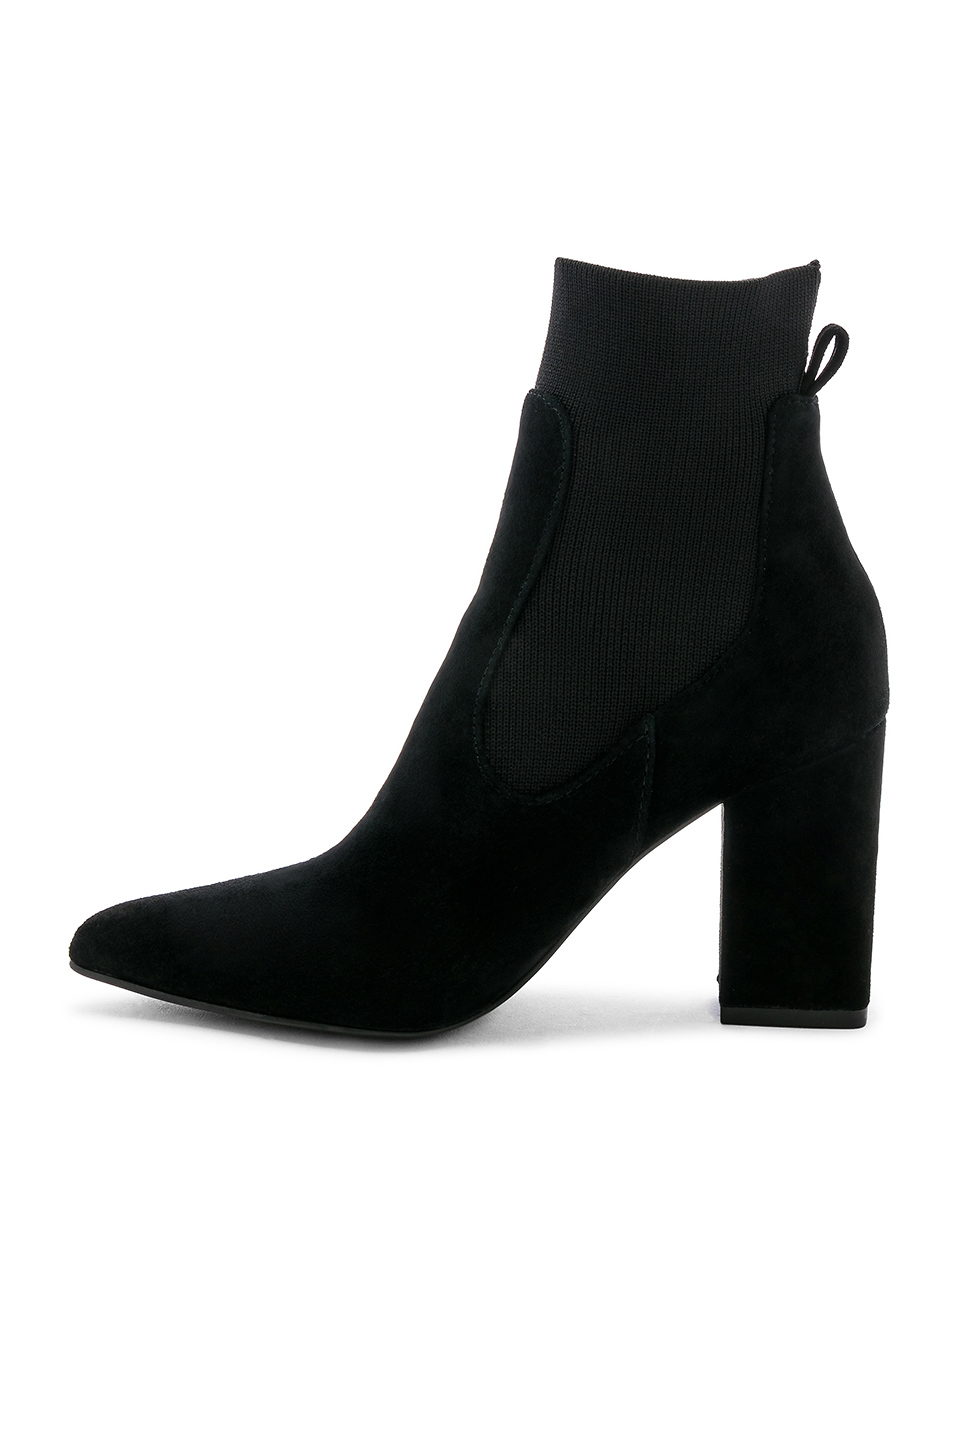 6416082aec4 Buy Original Steve Madden Richter Bootie at Indonesia